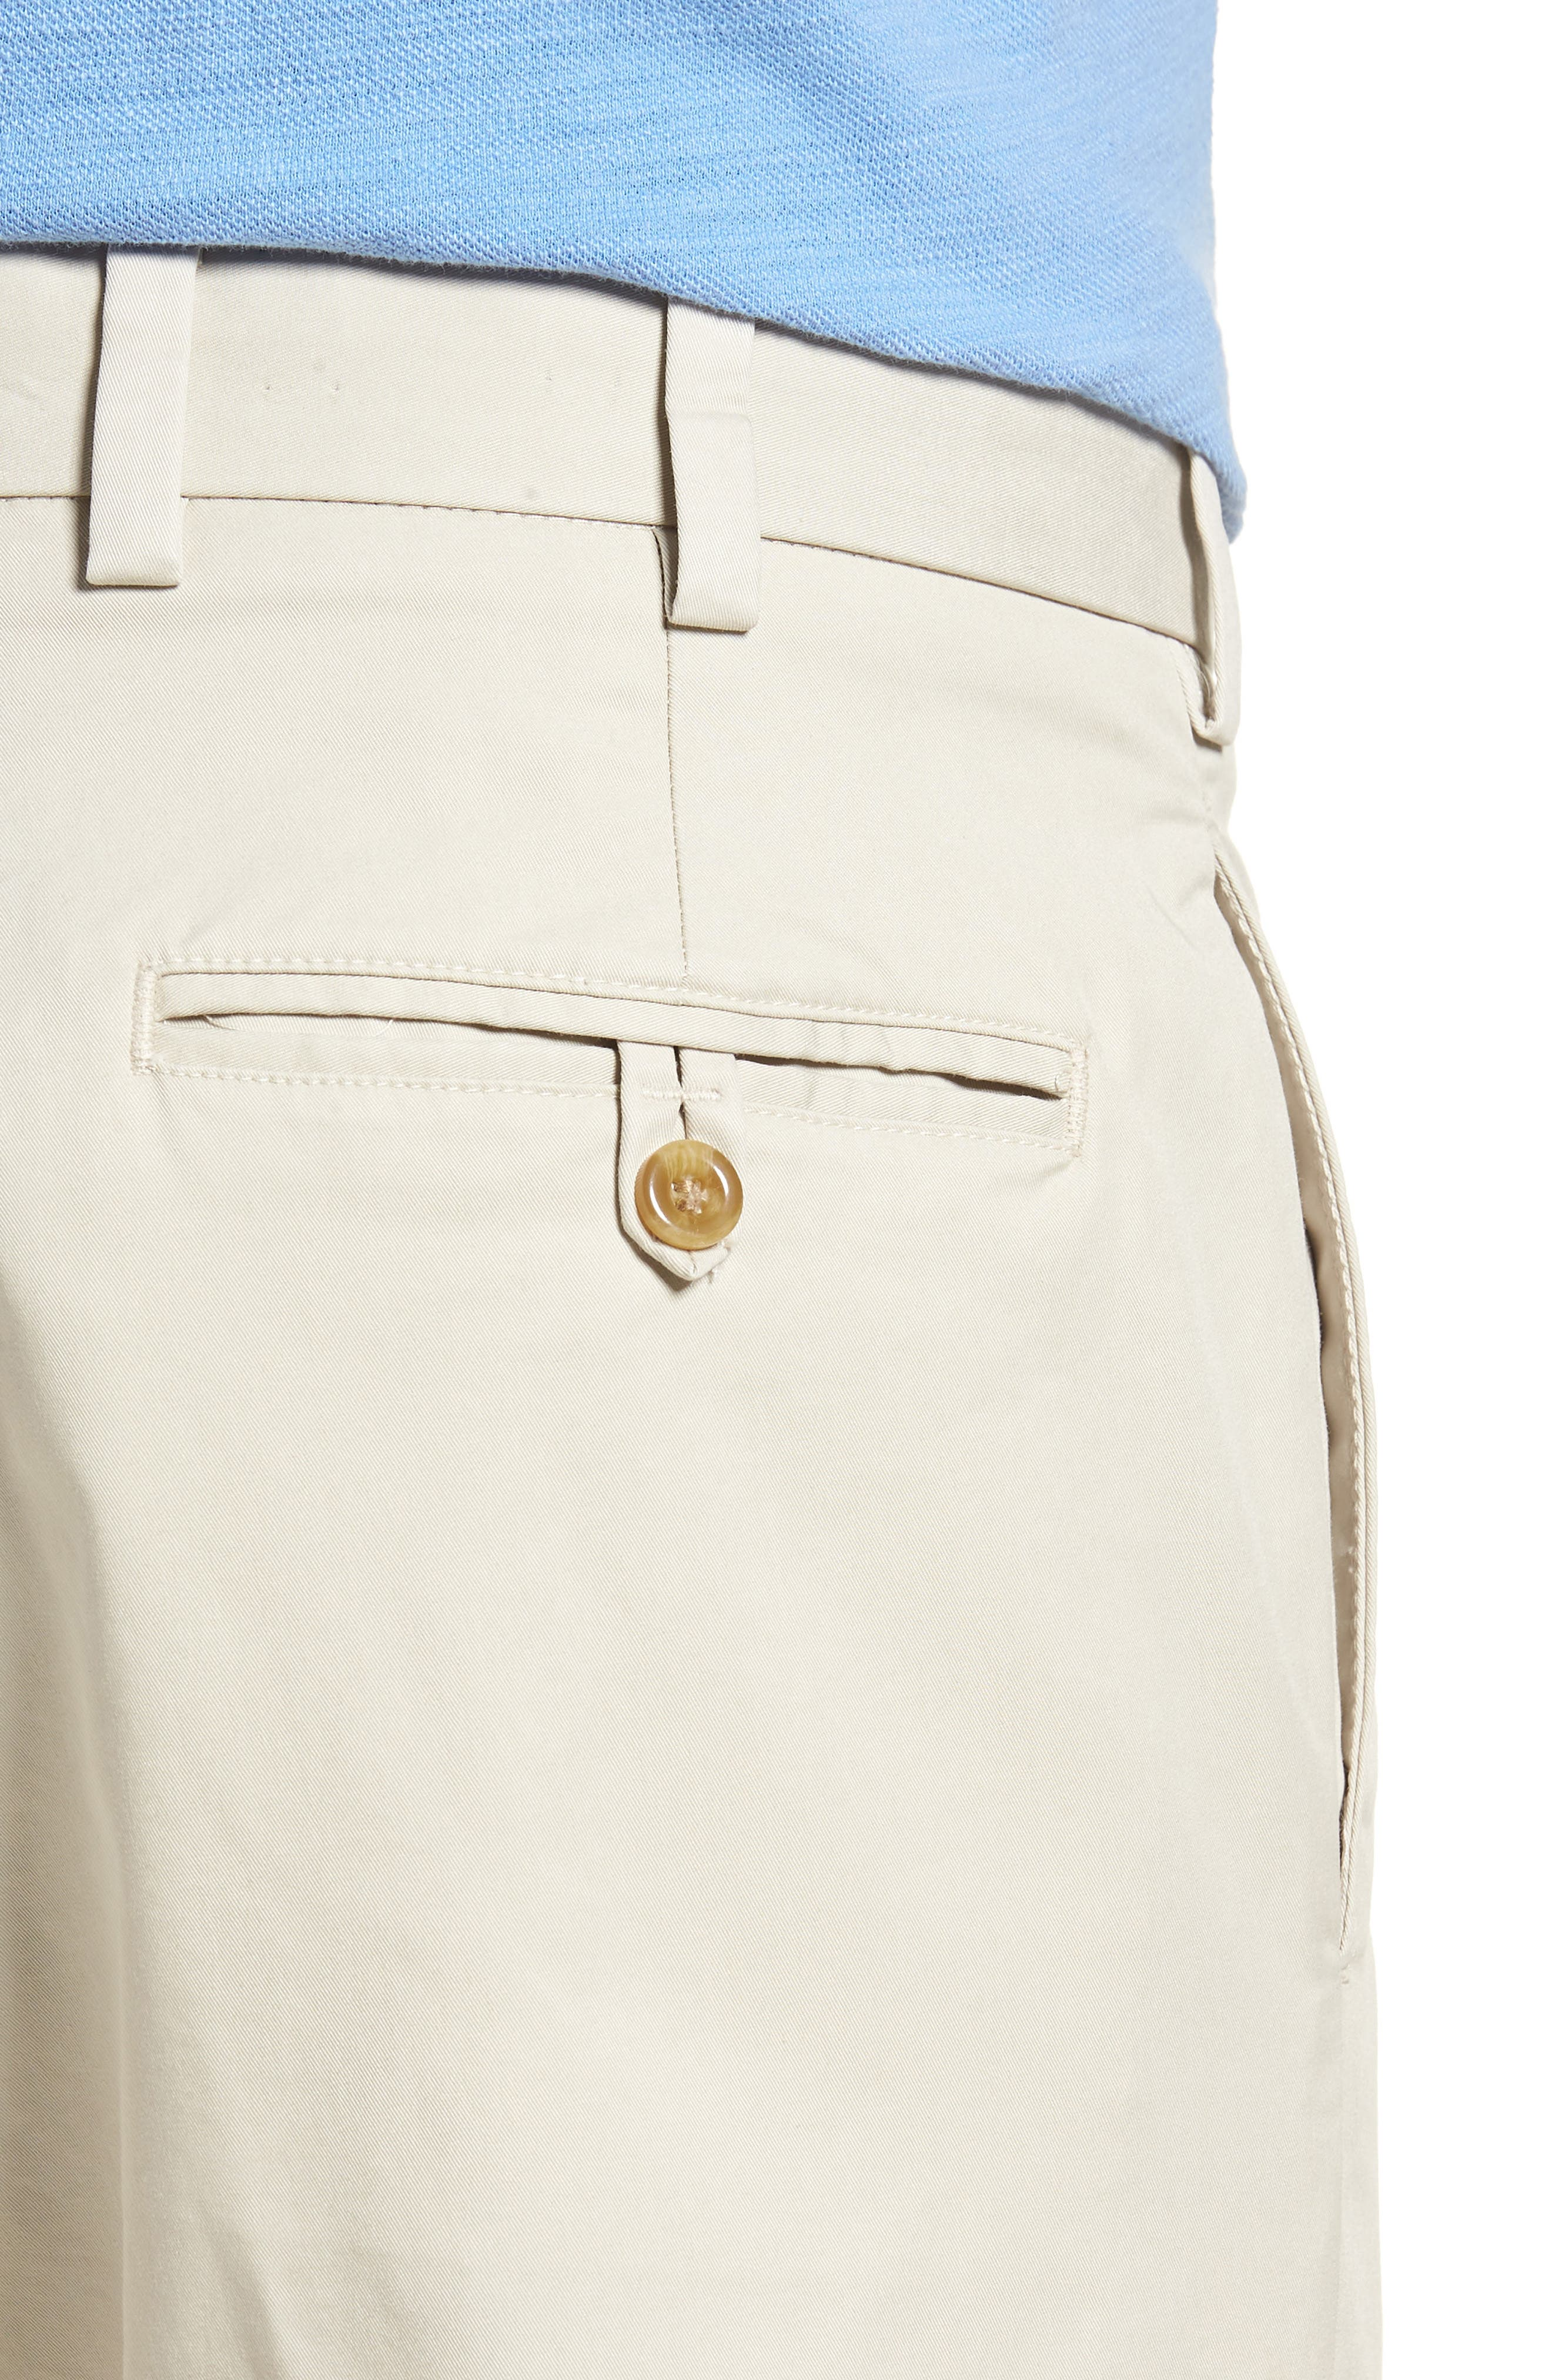 M2 Classic Fit Flat Front Travel Twill Pants,                             Alternate thumbnail 4, color,                             Cement